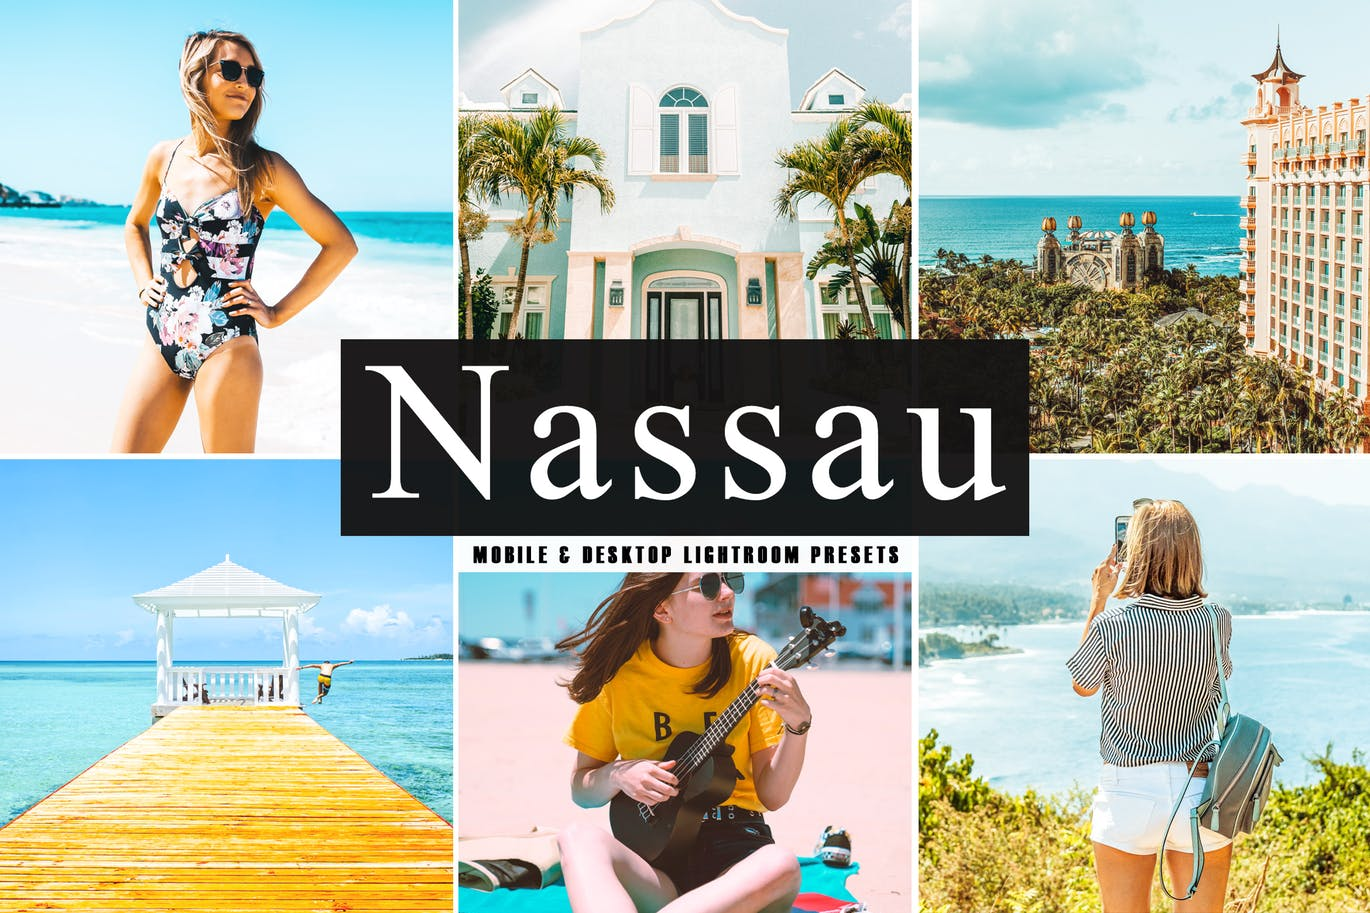 Nassau Mobile & Desktop Lightroom Presets